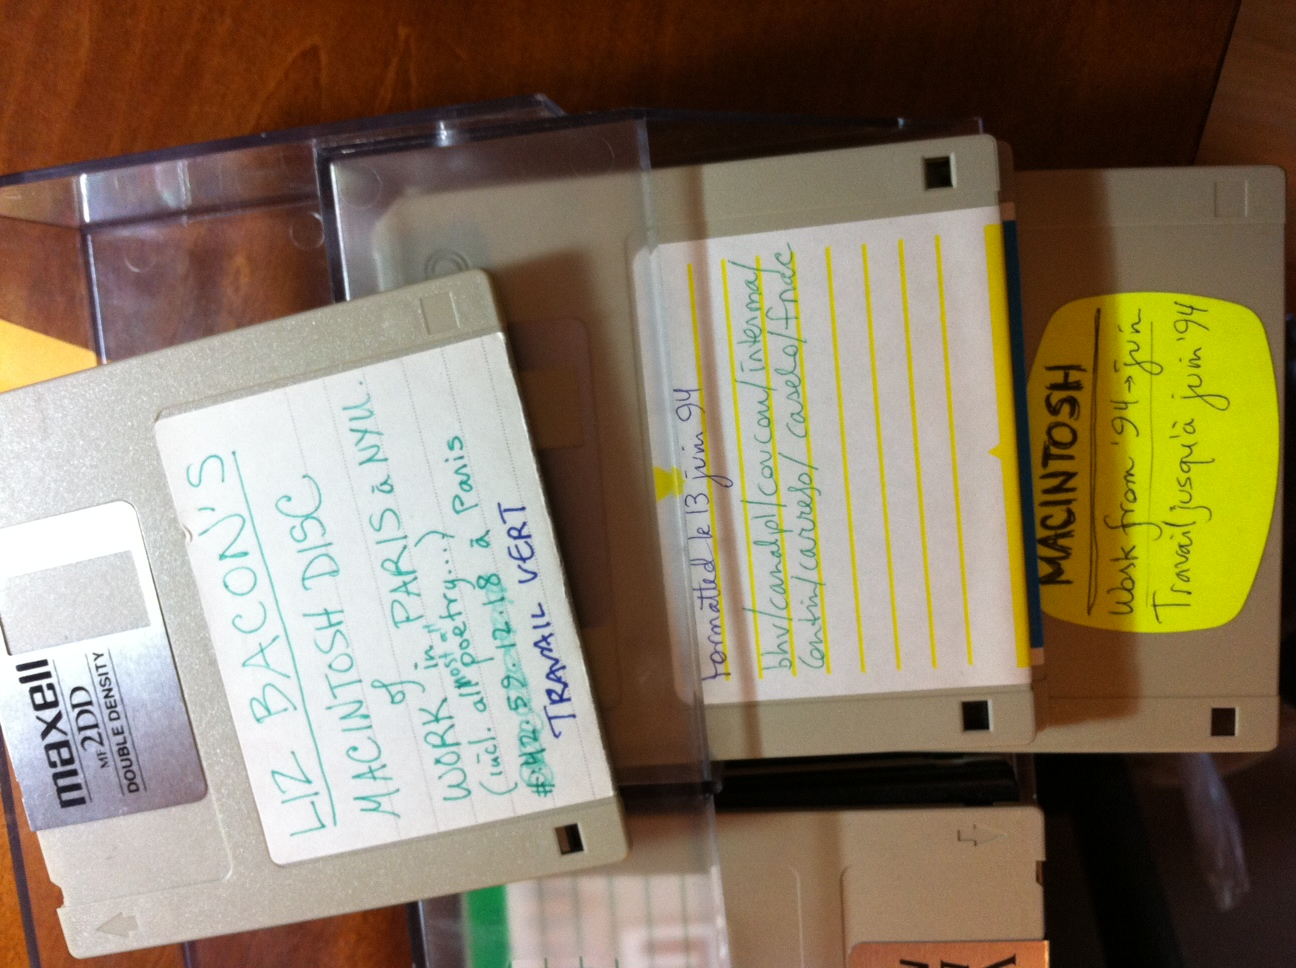 What do you do with floppies from 1994?